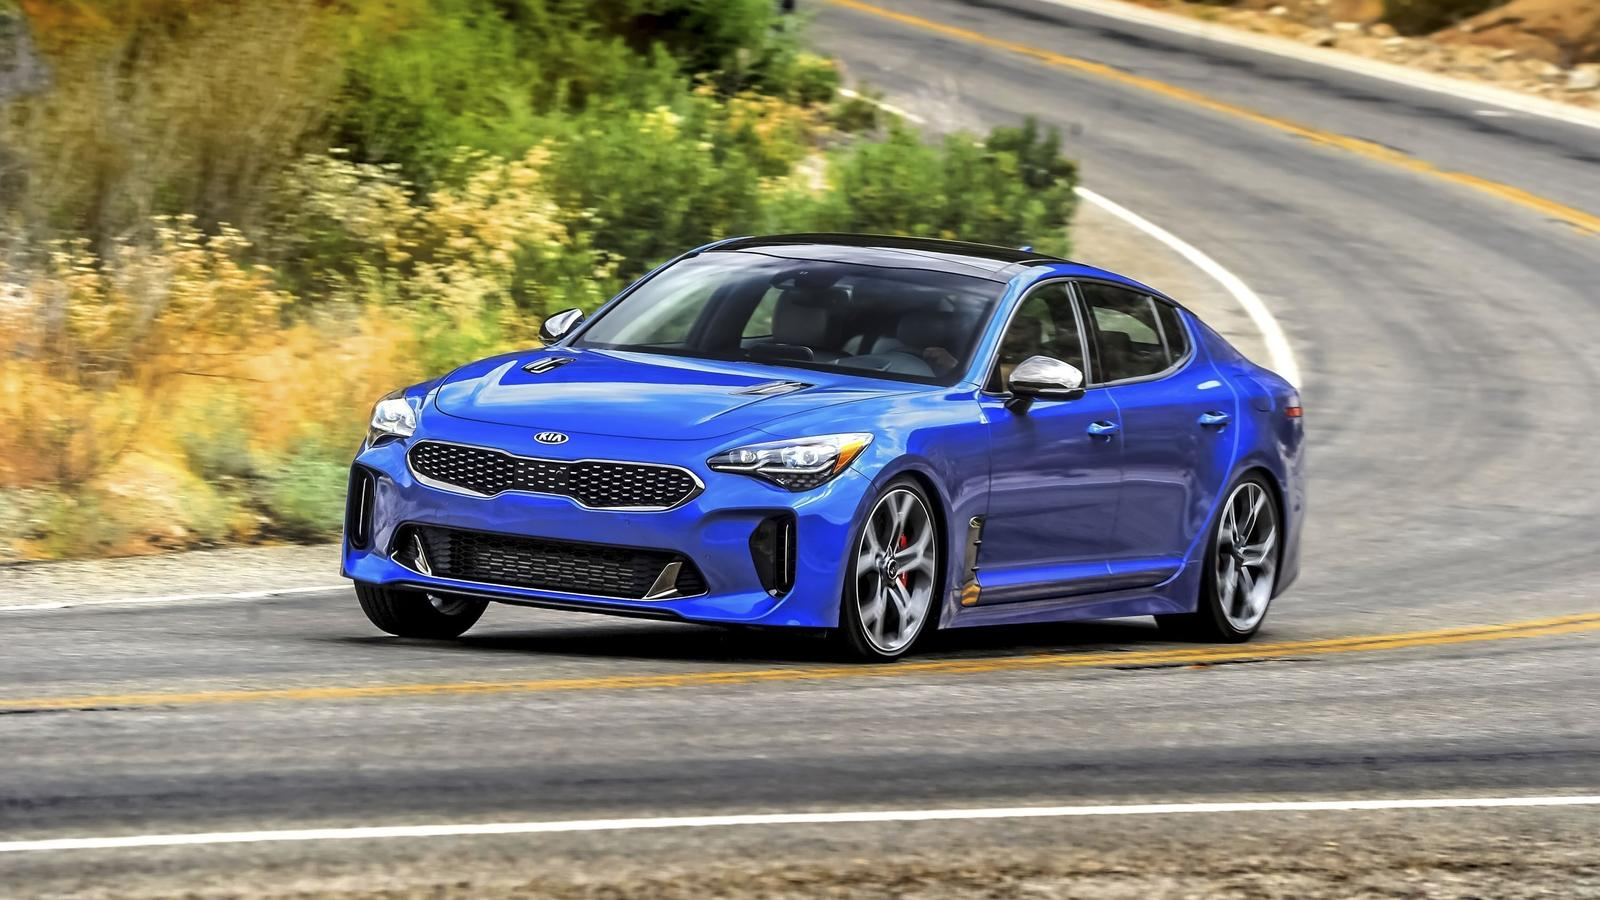 2018 Kia Stinger Pictures Photos Wallpapers And Videos